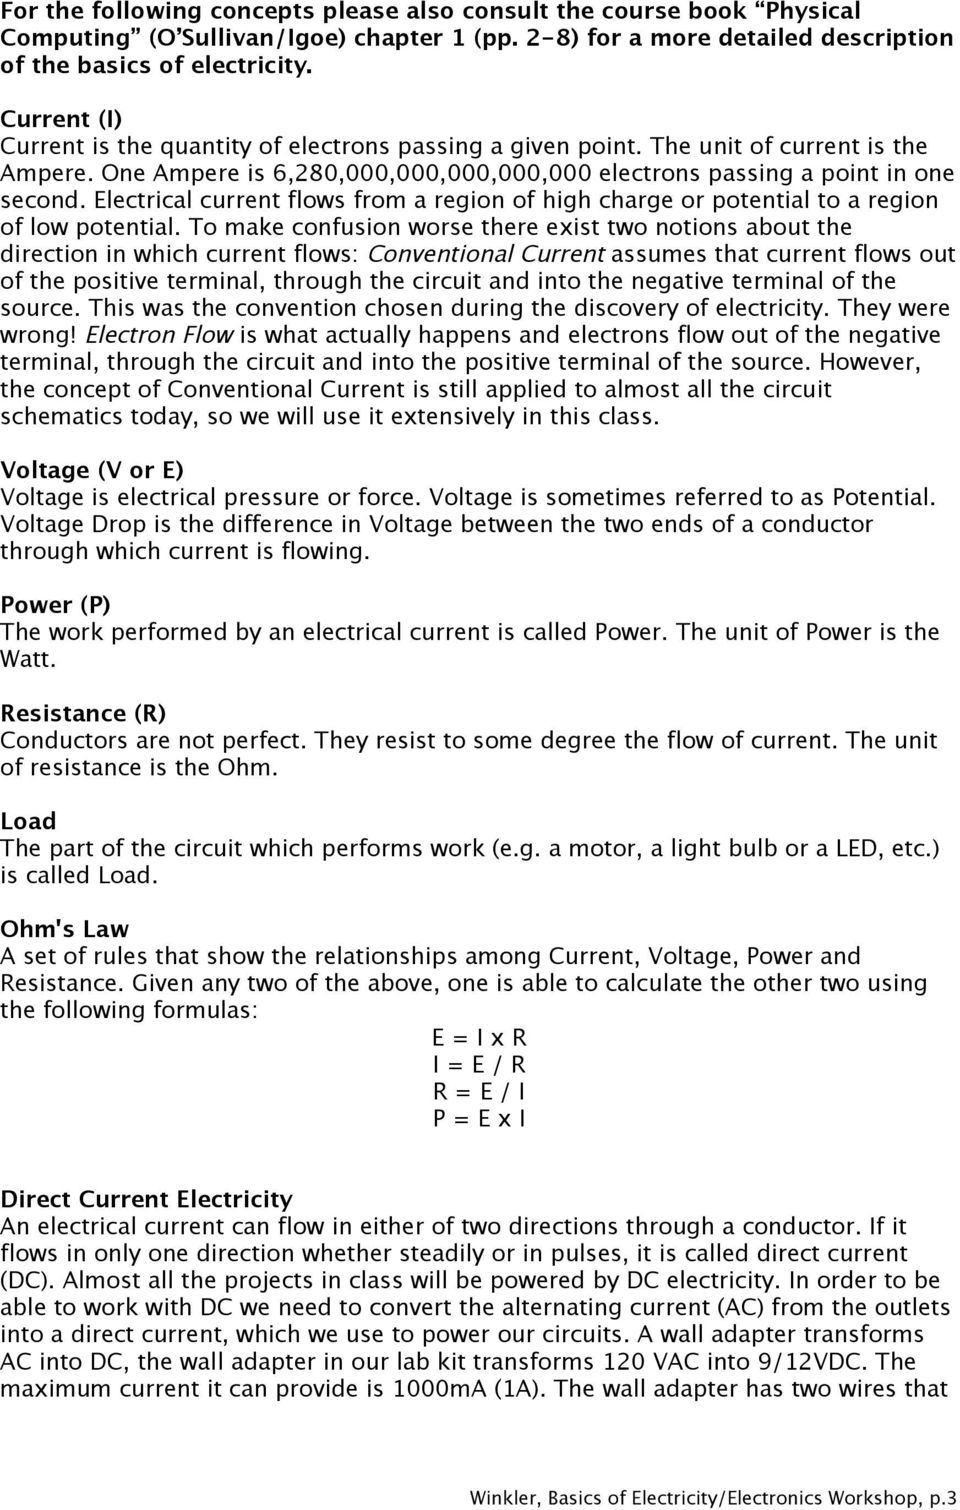 Basics Of Electricity Electronics Fabian Winkler Pdf Picture The Three Electric Circuits Voltage Current Electrical Flows From A Region High Charge Or Potential To Low